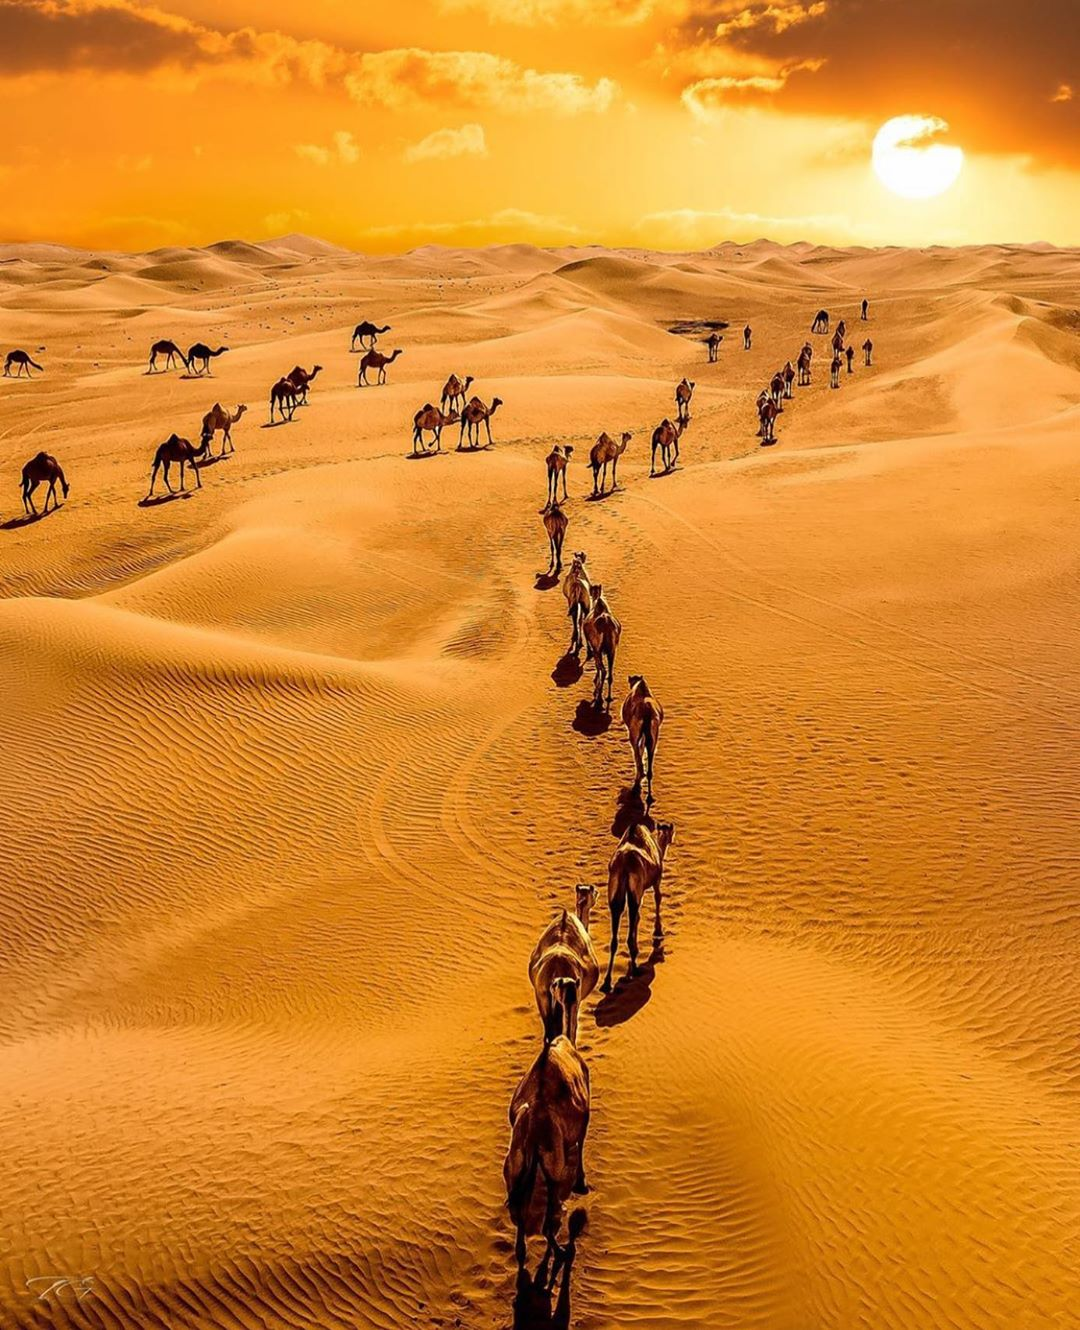 DESERT SAFARI-AN AMAZING PLACE TO VISIT IN DUBAI